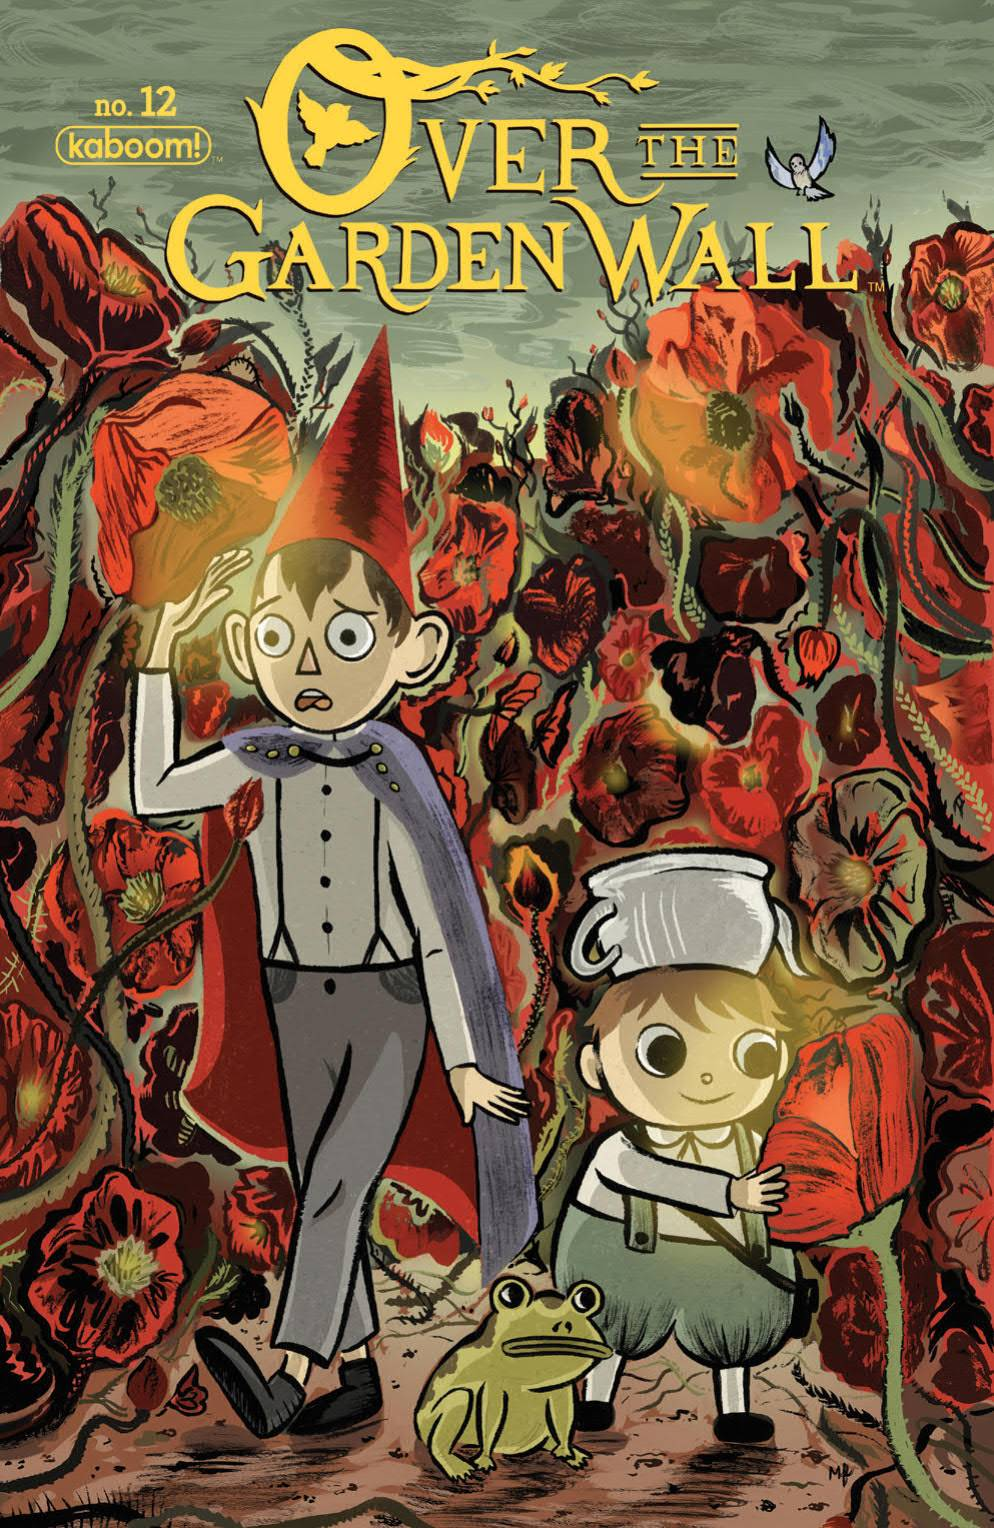 Over the Garden Wall #12